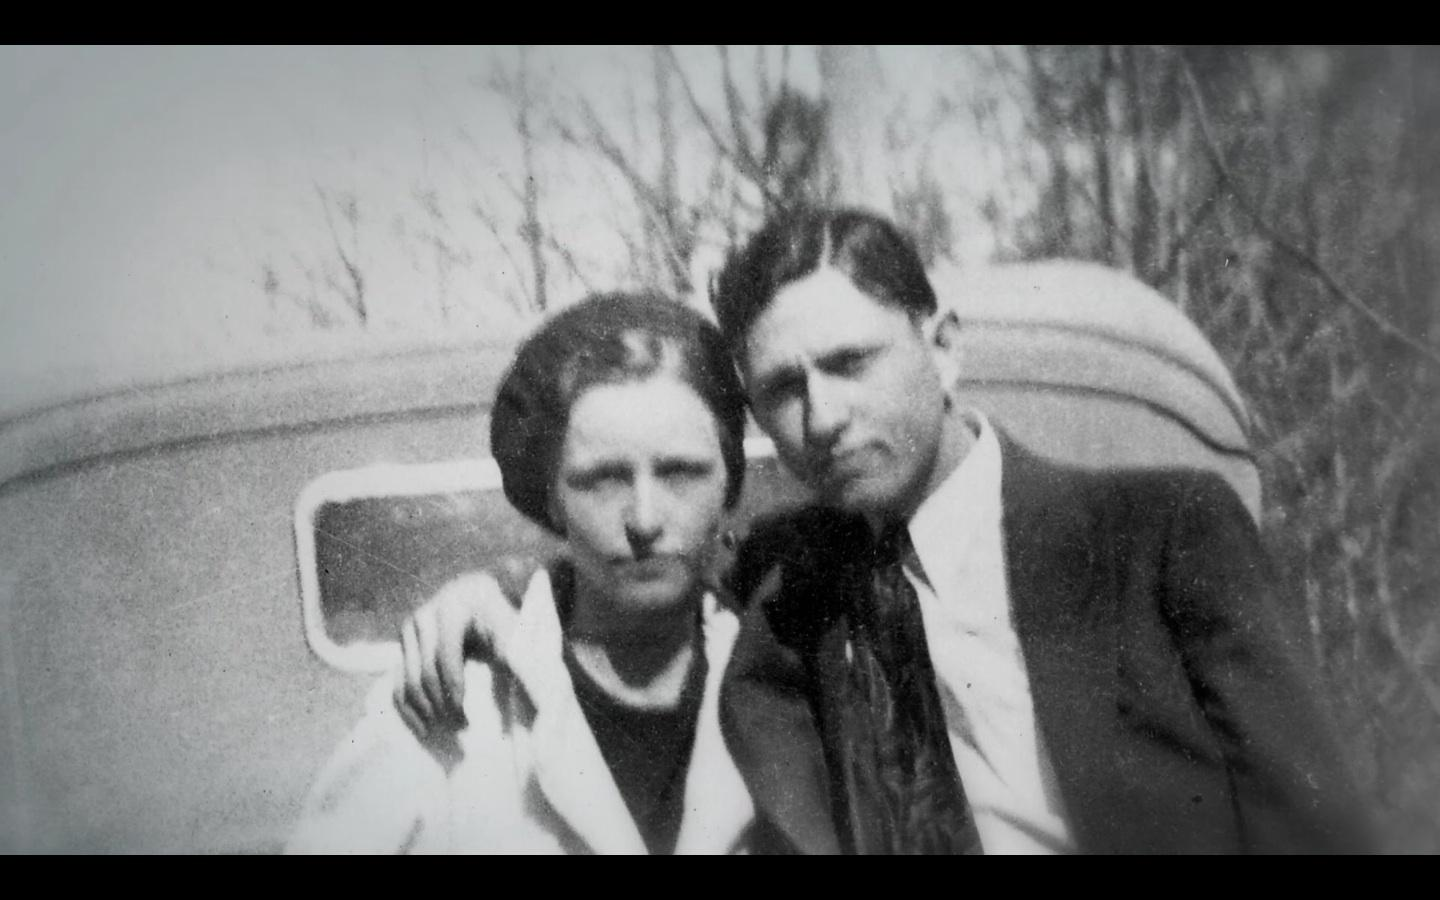 Bonnie & Clyde, Chapter 1